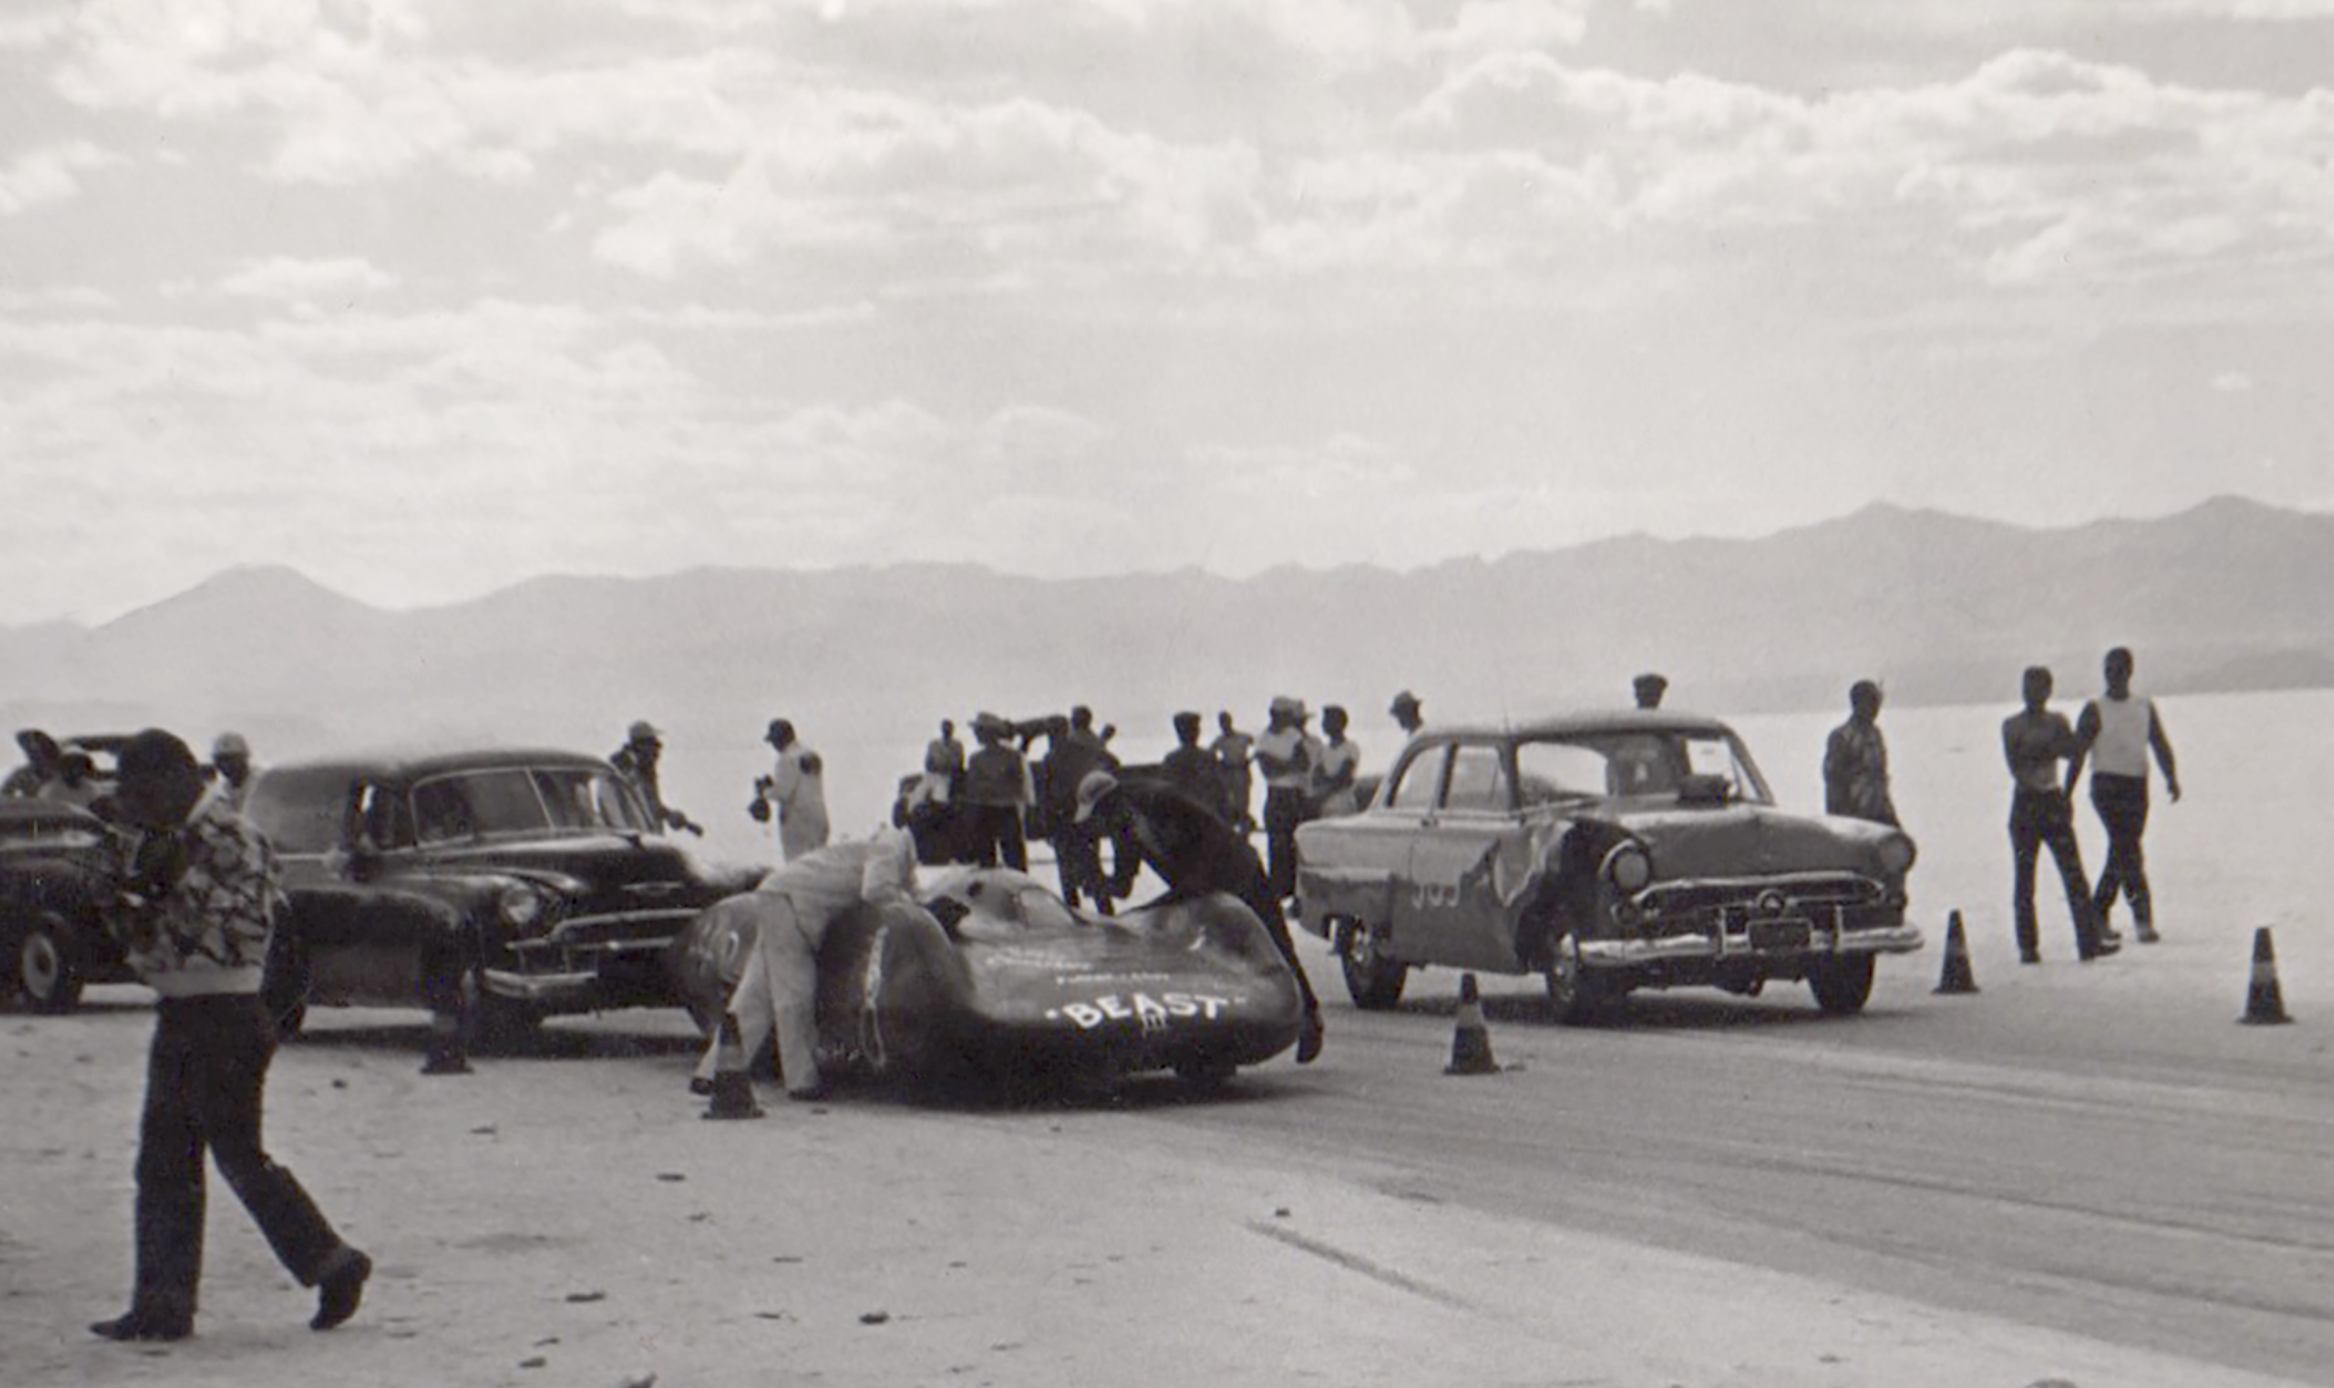 Beast III at the starting line at Bonneville. Photo donated by Mike Nichols